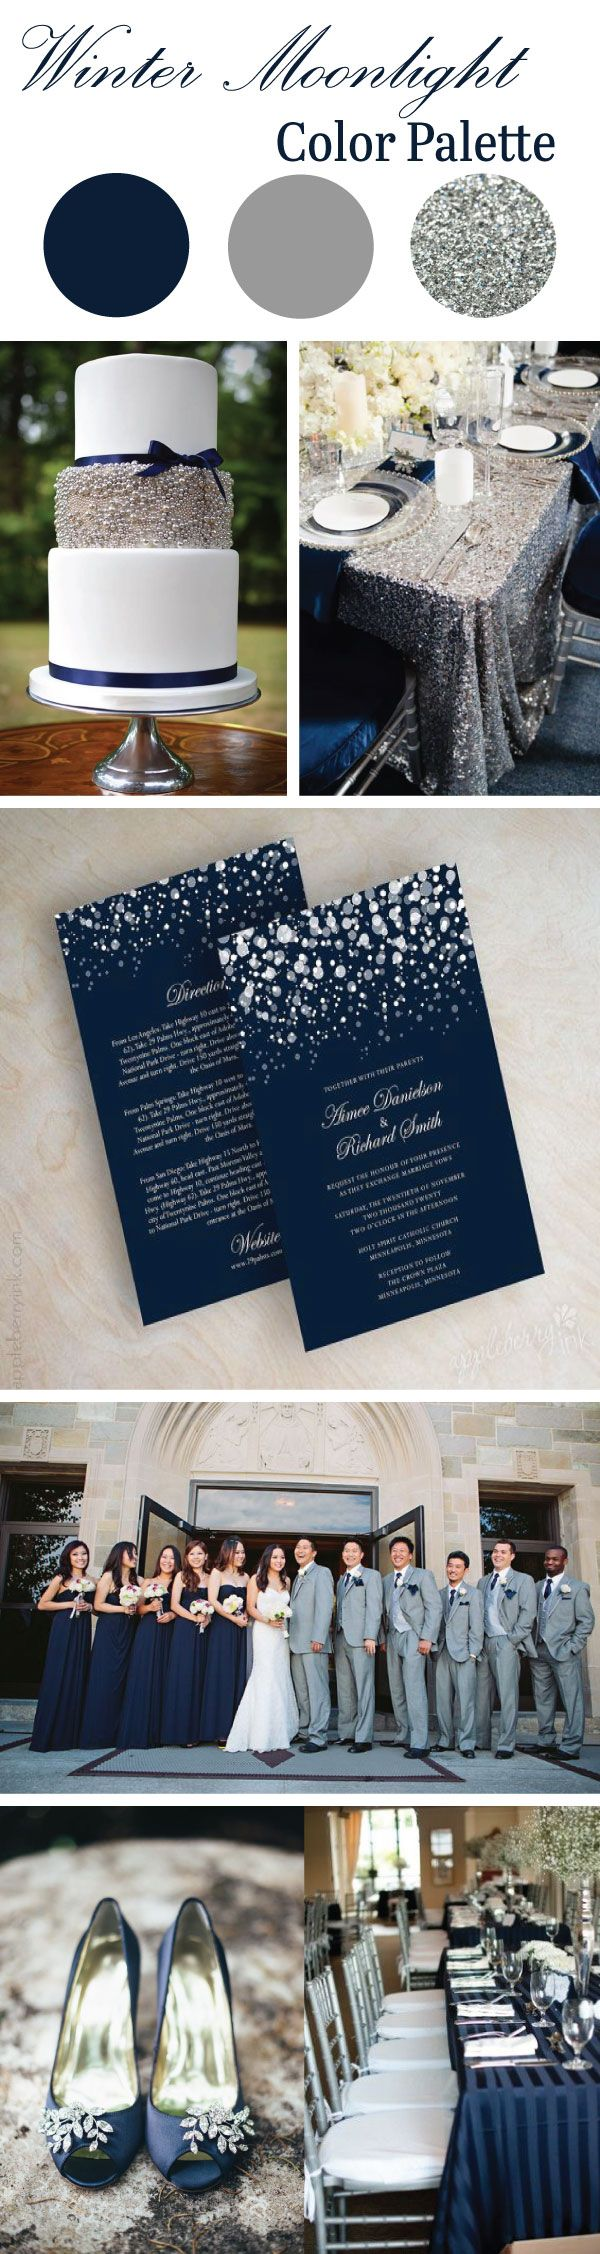 Winter hologram Moonlight   Palette Blog jordan  events    colorpalette    Color LinenTablecloth Wedding wedding